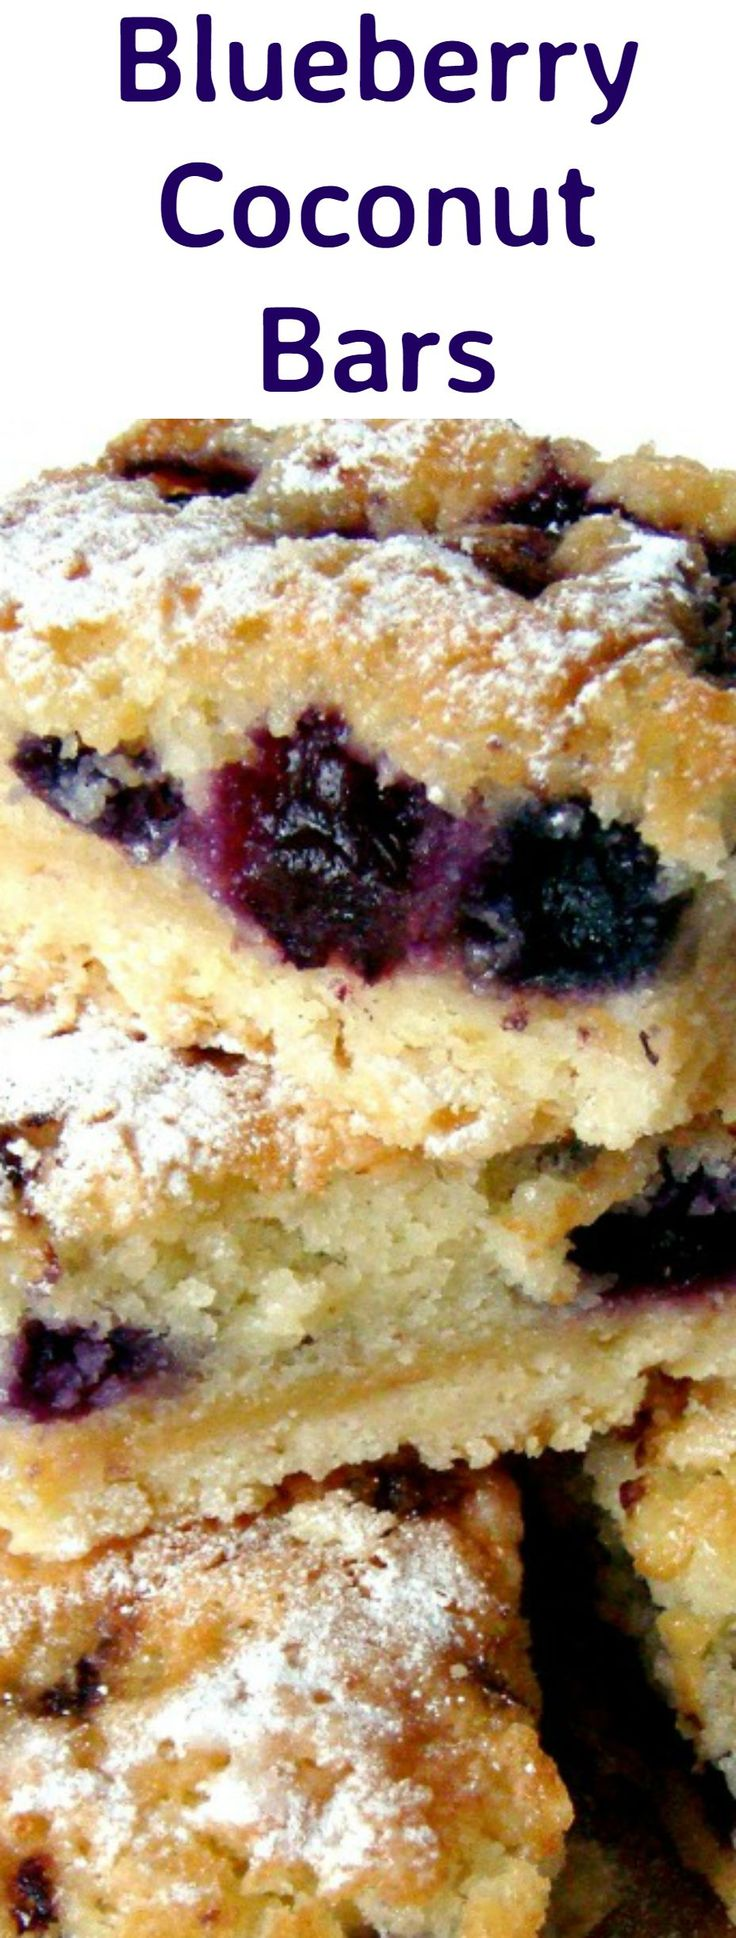 Blueberry Coconut Bars, Easy to make and very delicious too!